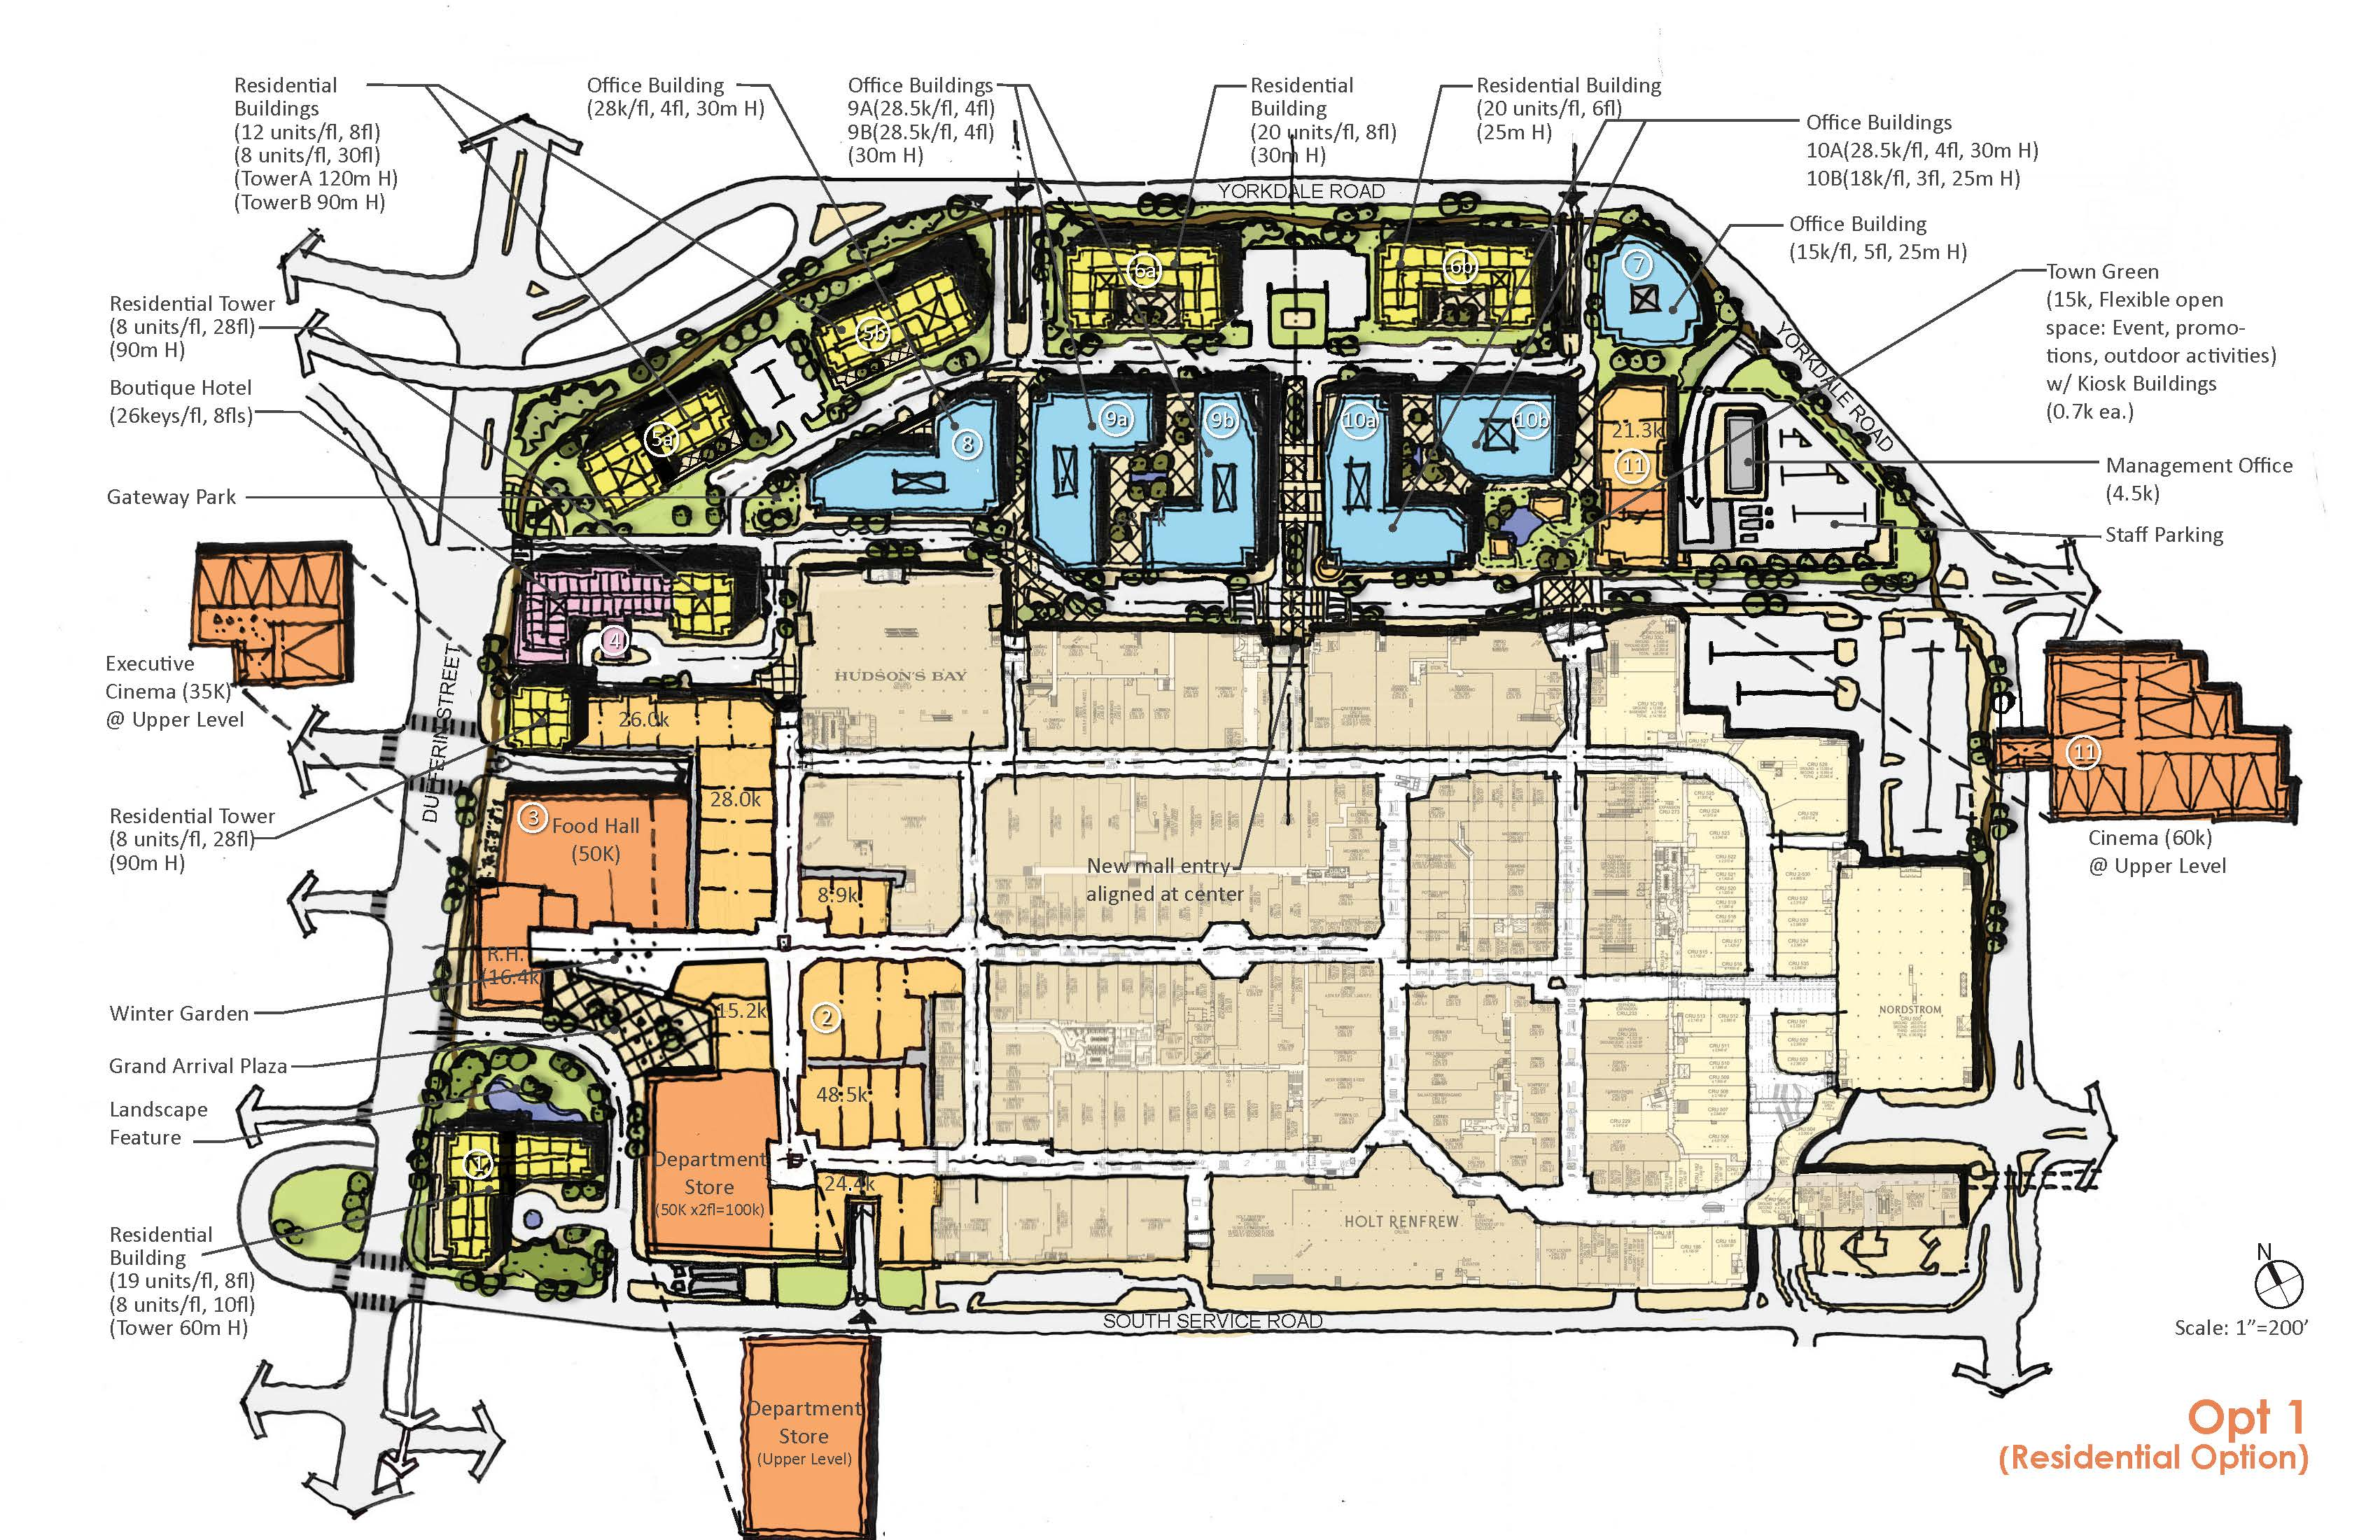 plan showing option one of the development proposal for Yorkdale Block, showing retail, hotel, office and residential spaces